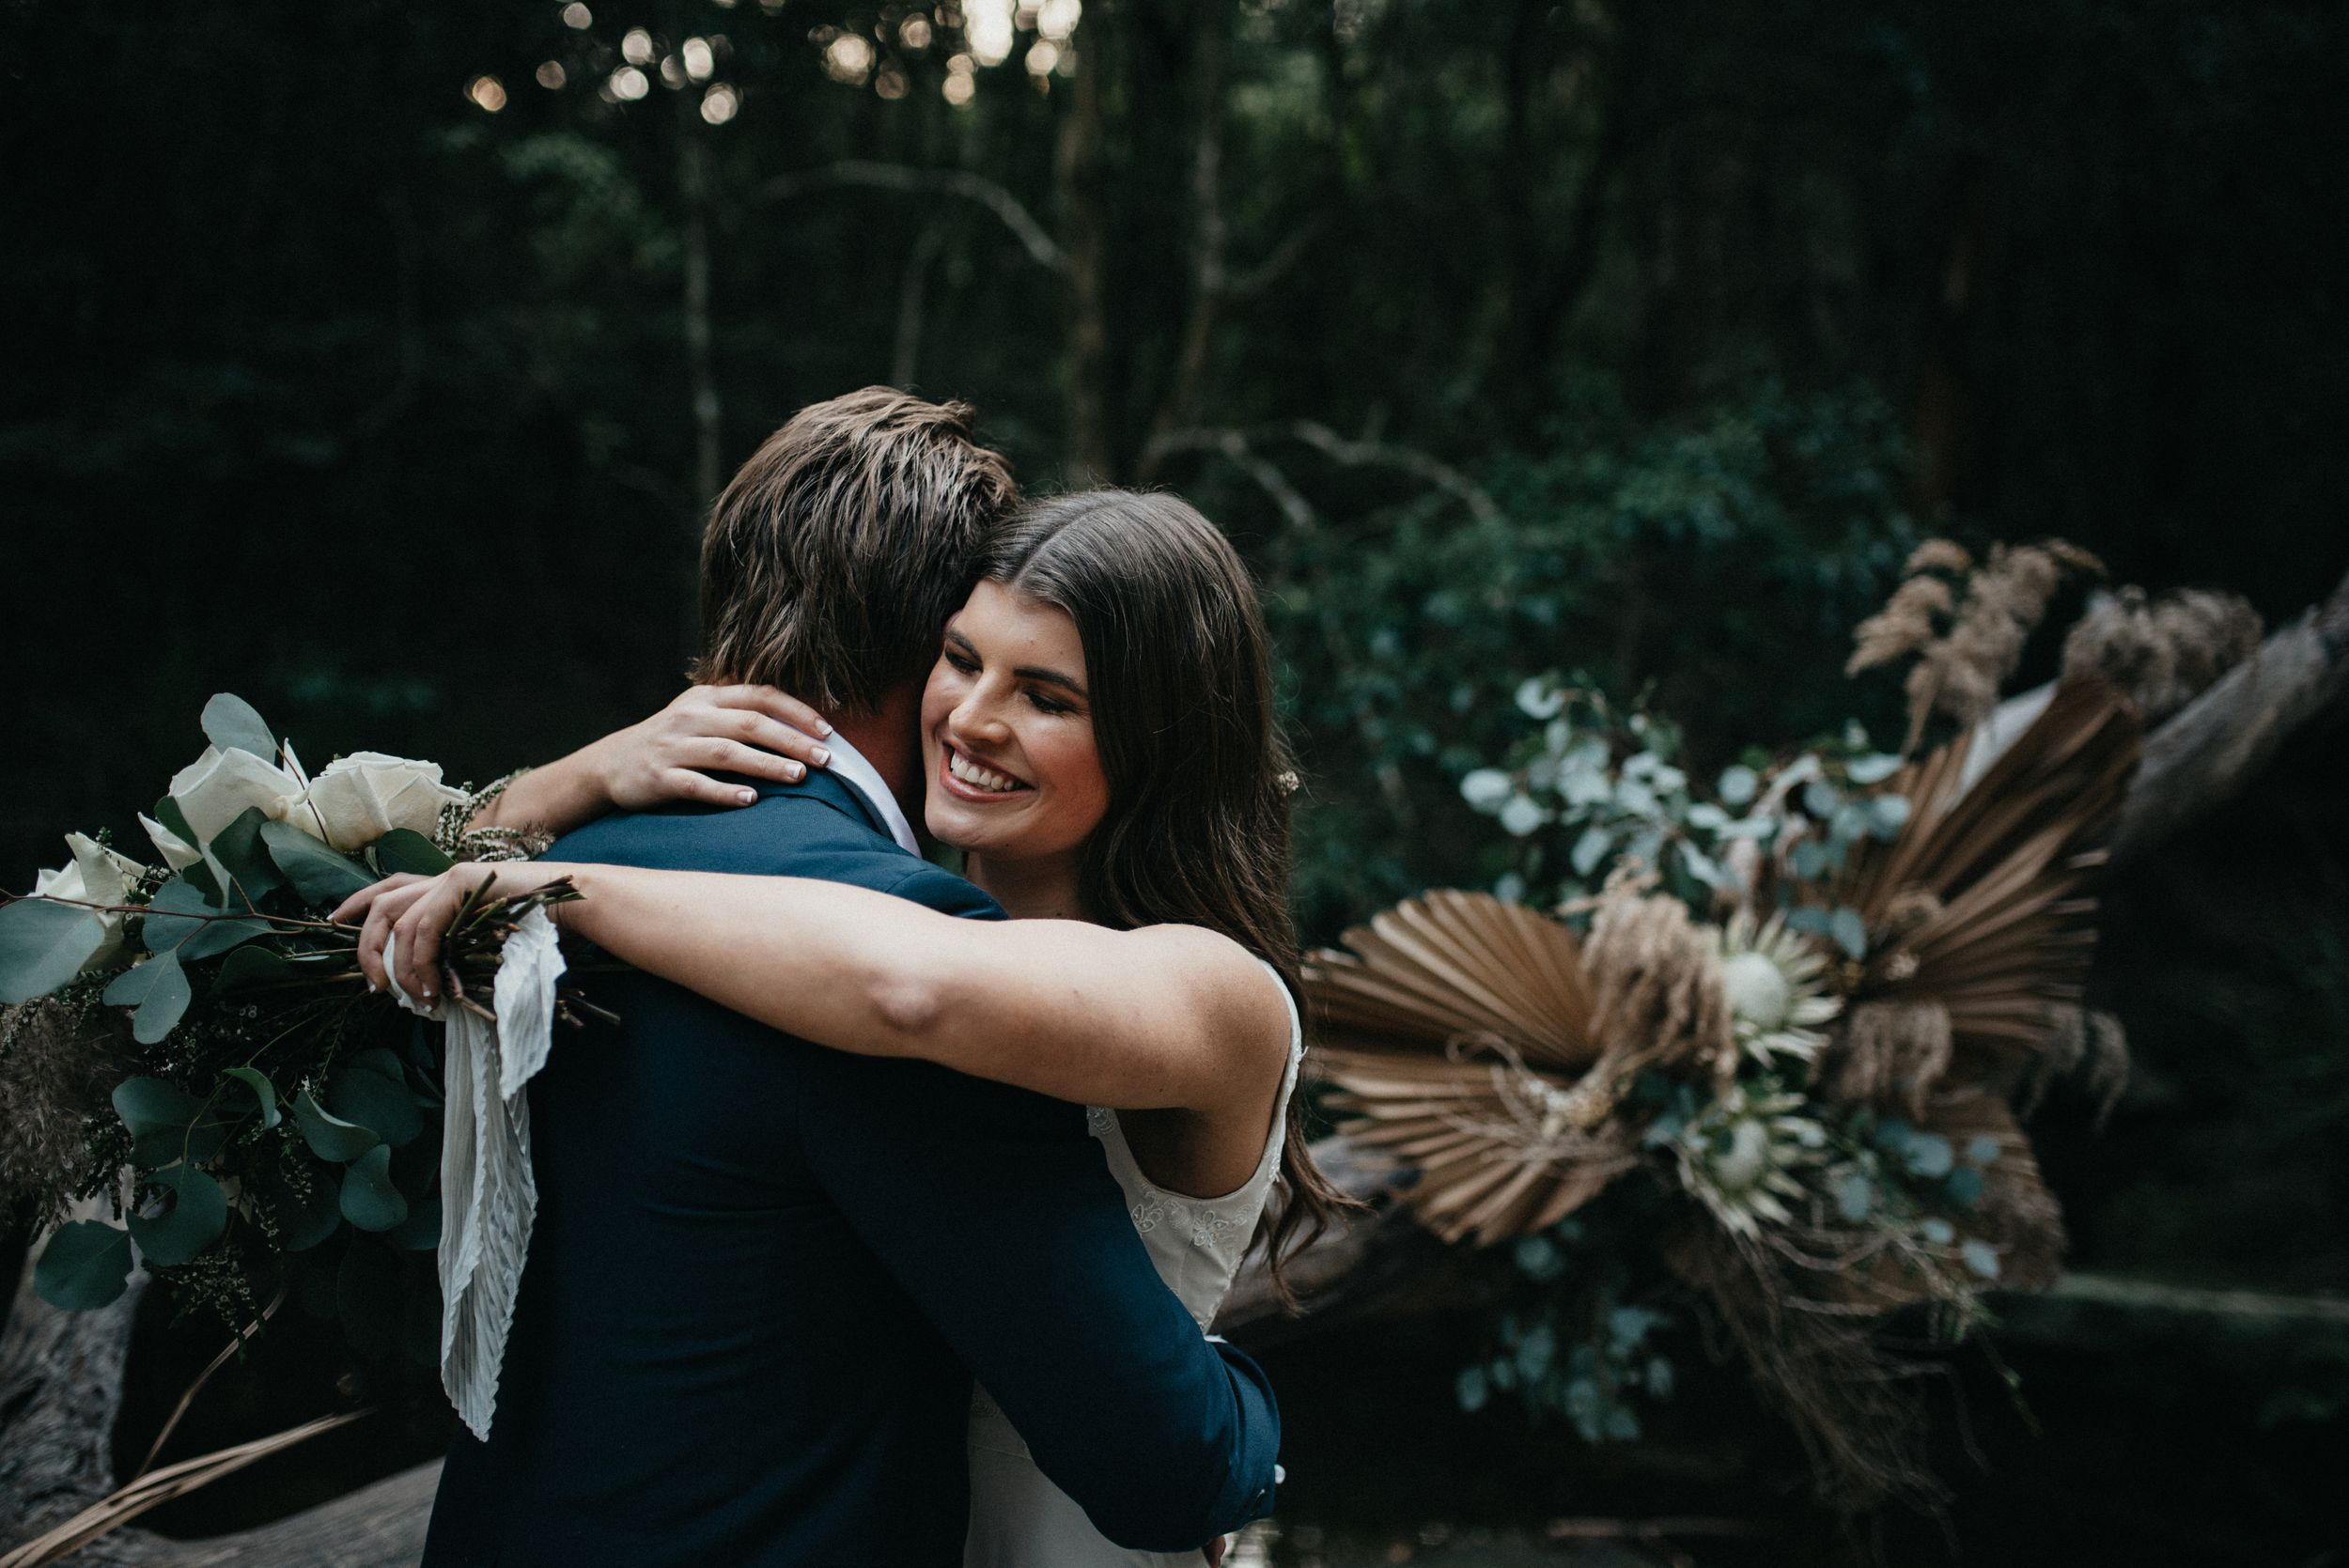 moody wedding photography of couple hugging in glenrock forest newcastle